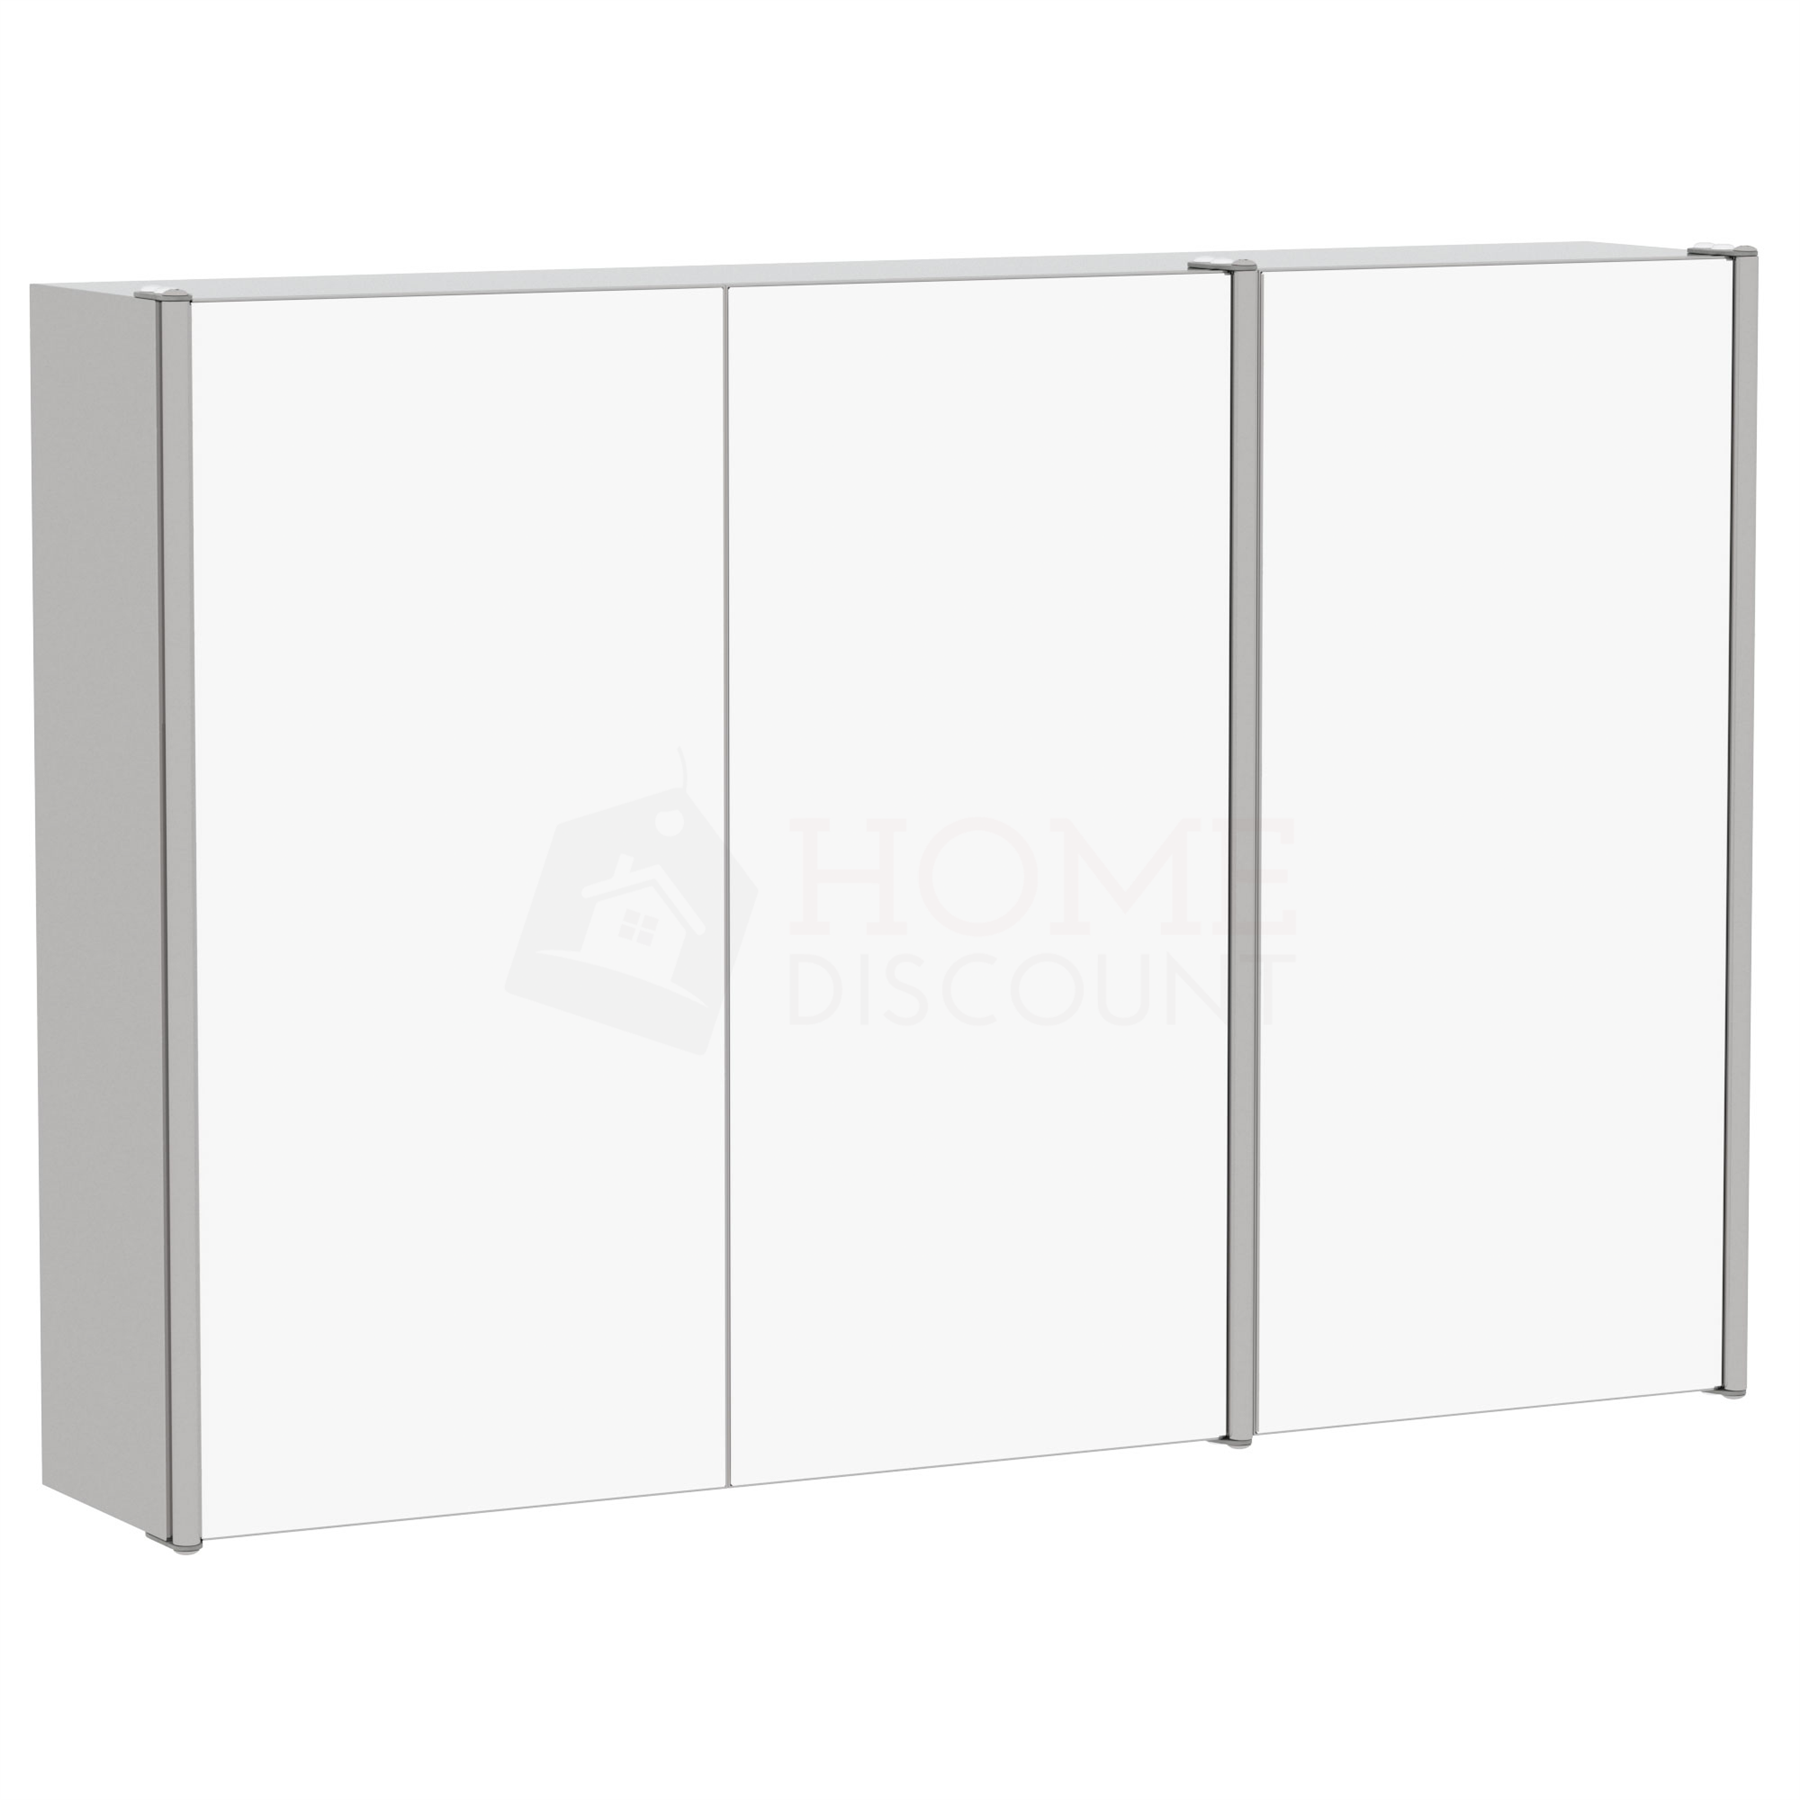 Bathroom-Cabinet-Double-Triple-Door-Wall-Mounted-Mirror-Storage-Stainless-Steel thumbnail 17